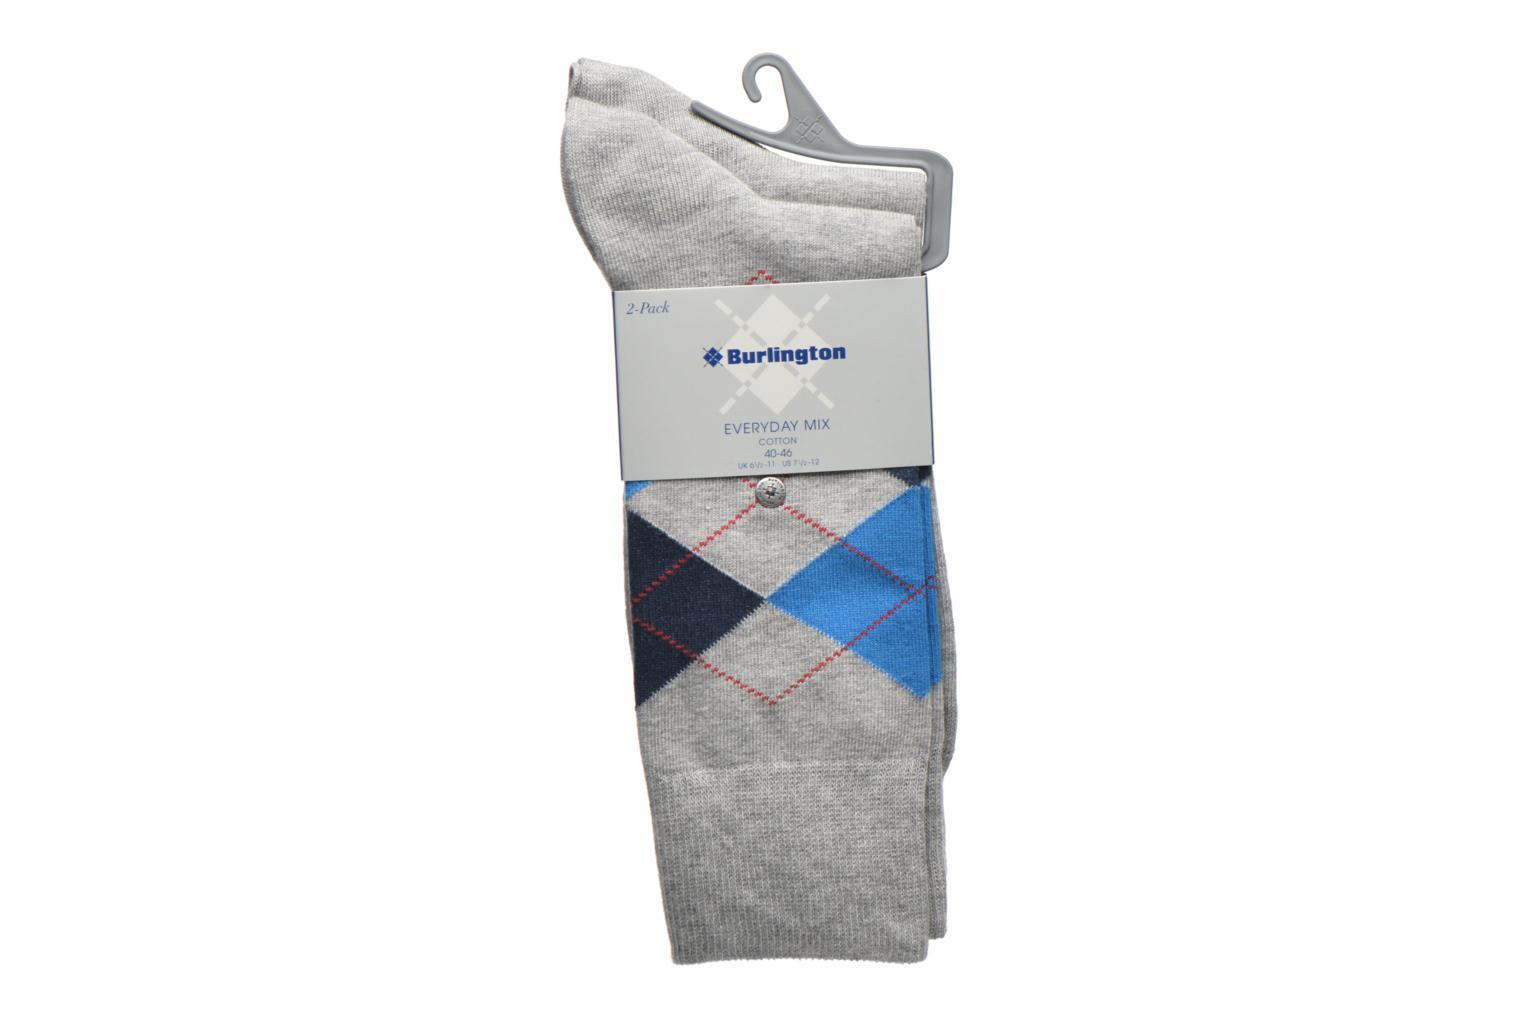 Chaussettes E.day Mix Pack de 2 3400